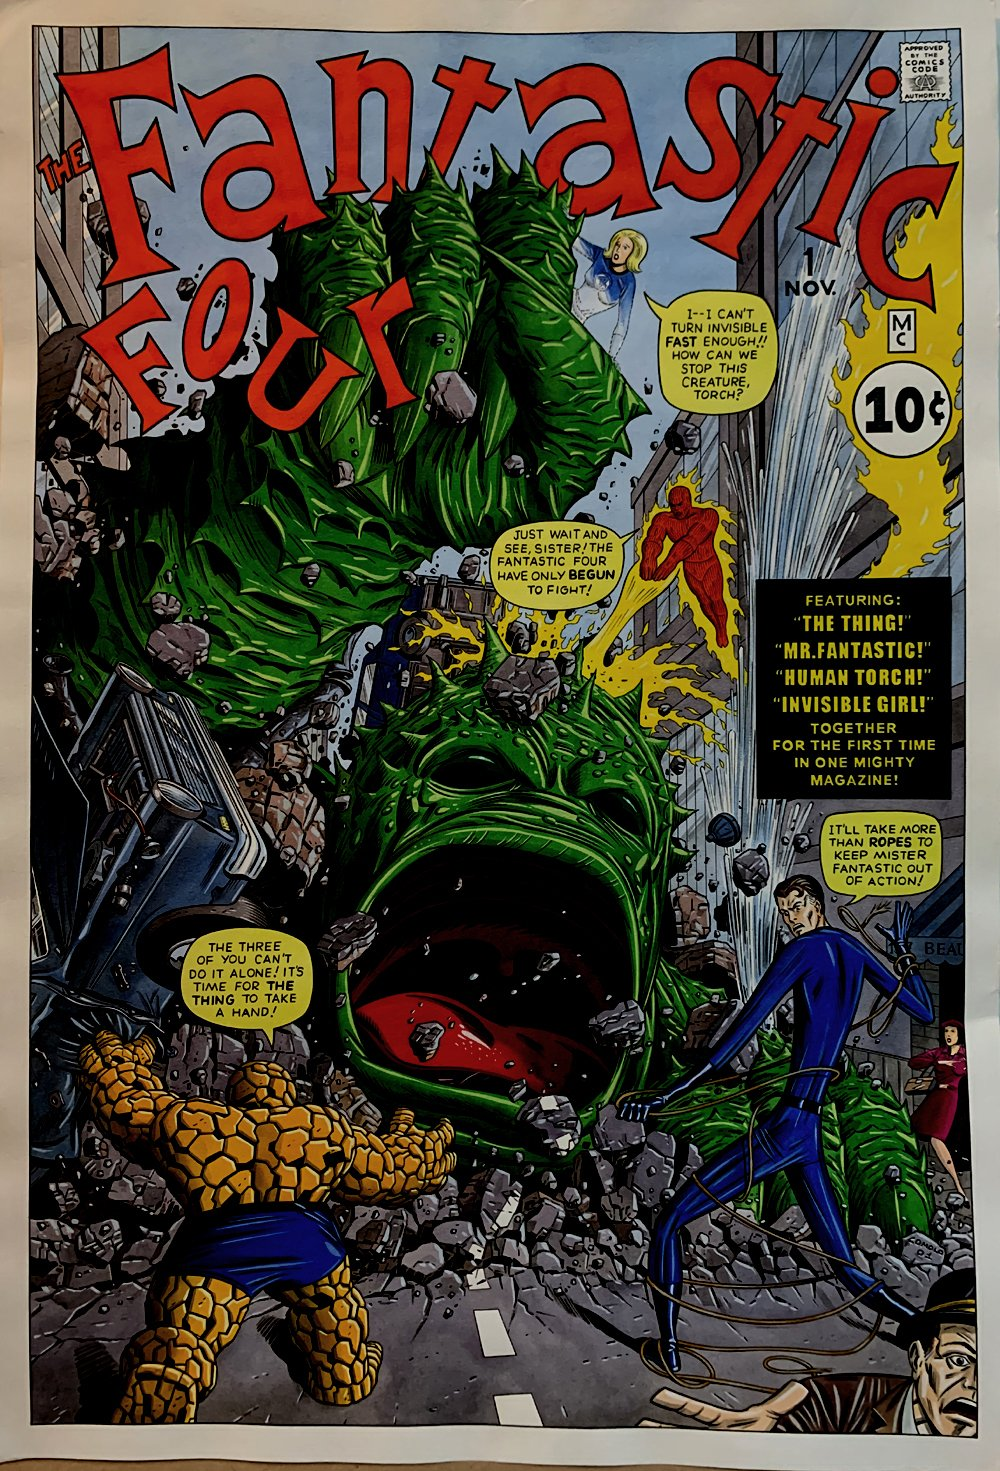 Fantastic Four #1 Incredibly Detailed HUGE Mixed Media Cover Re-Interpretation (2001)